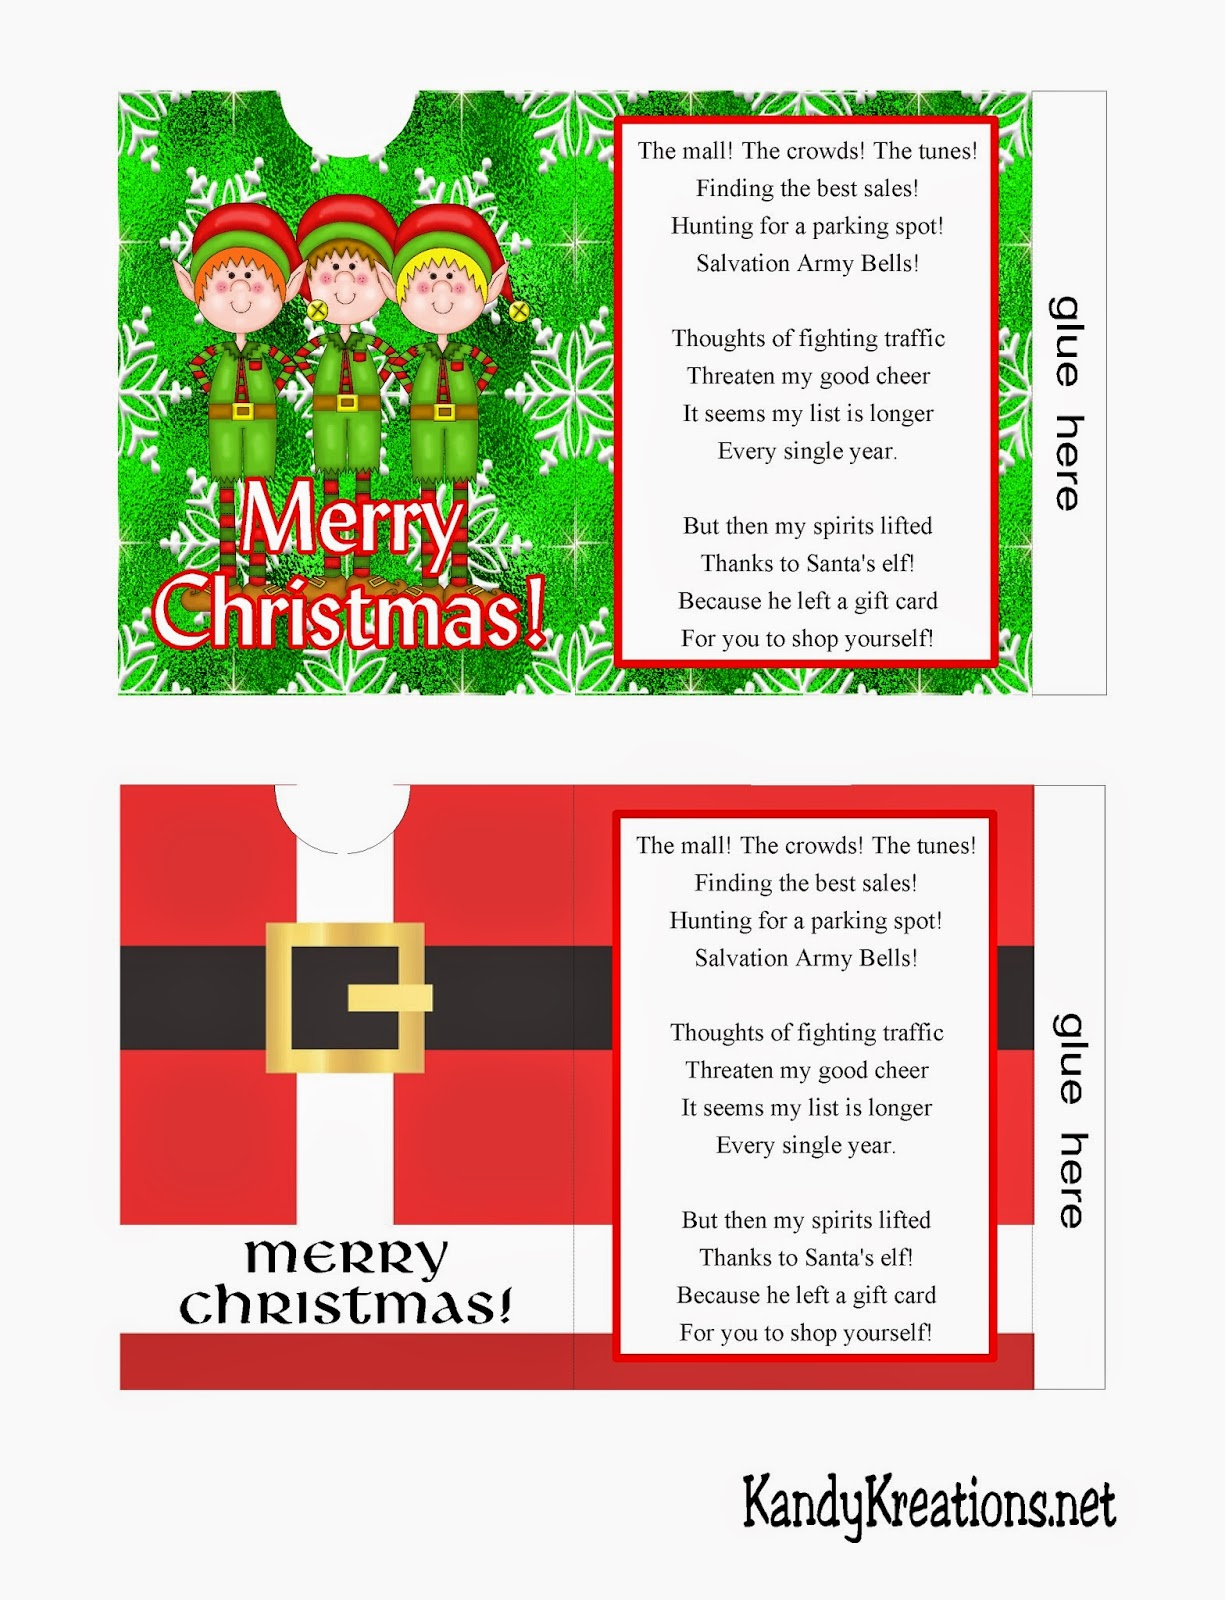 Everyone loves to receive gift cards at Christmas, but they aren't much fun to give.  Solve that problem with these cute Christmas gift card envelopes.  With this free printable you can print your own gift card envelopes with a cute Christmas poem and design so everyone will be happy!